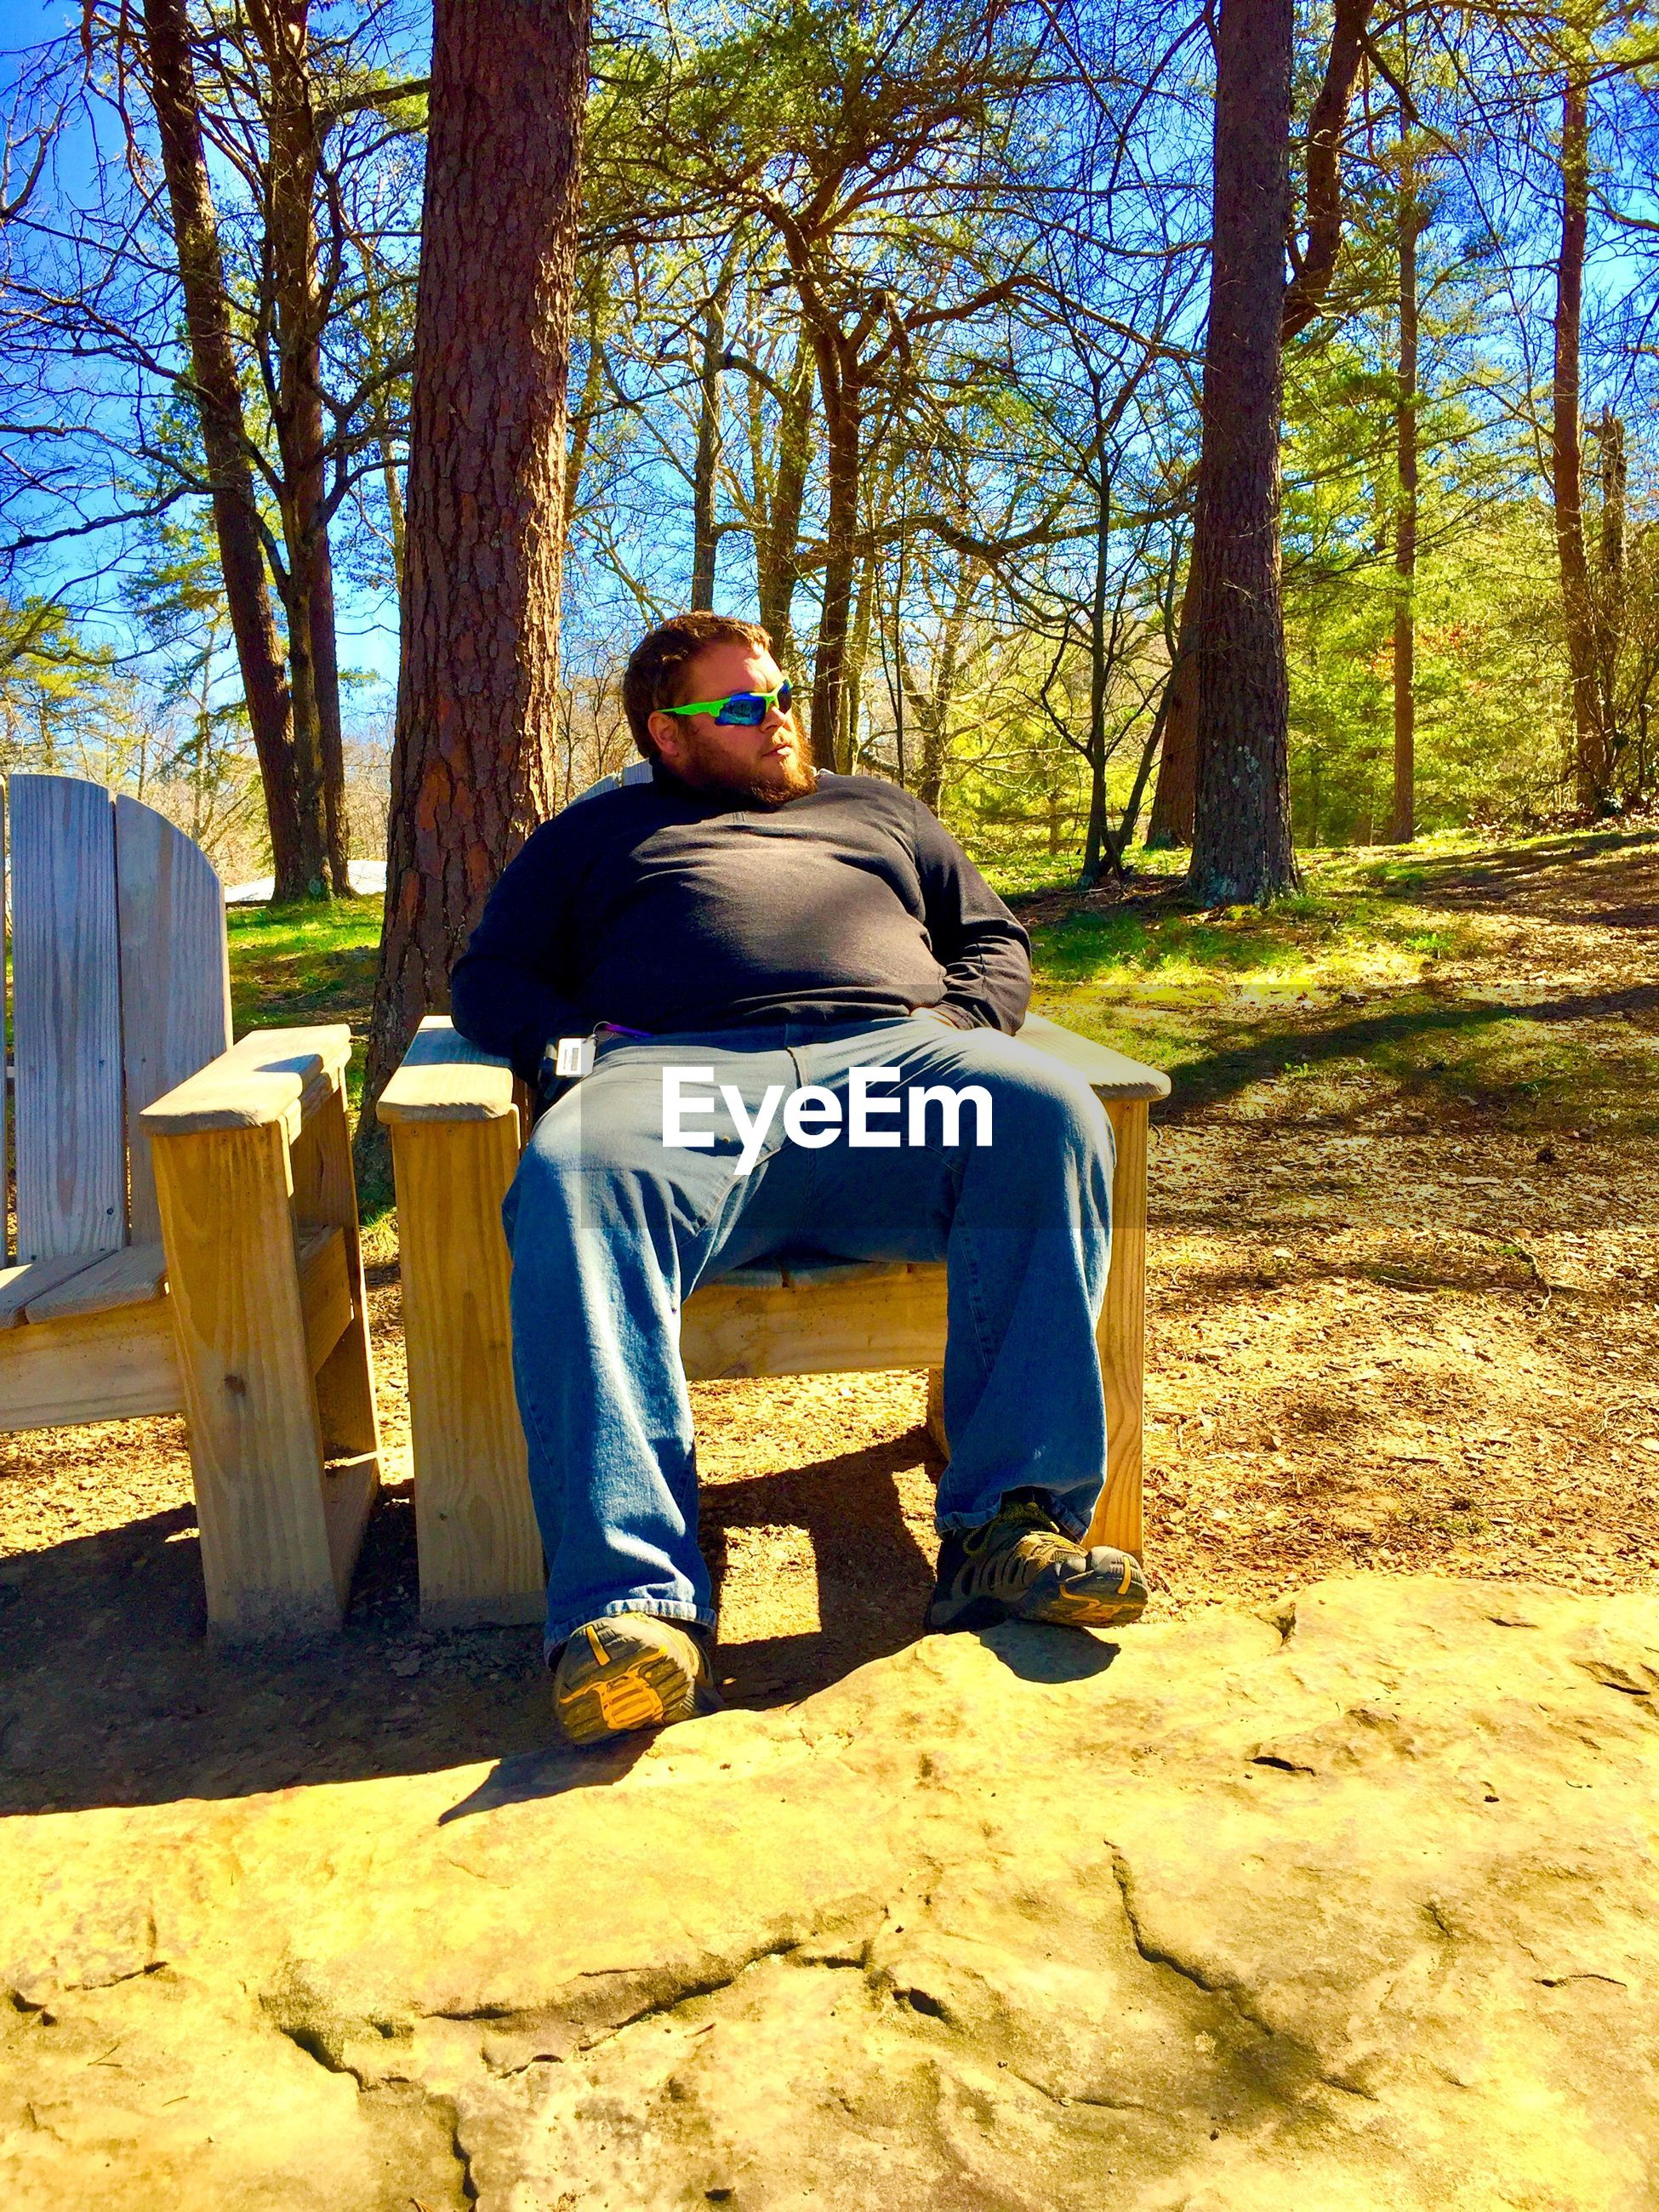 Man sitting on bench against trees